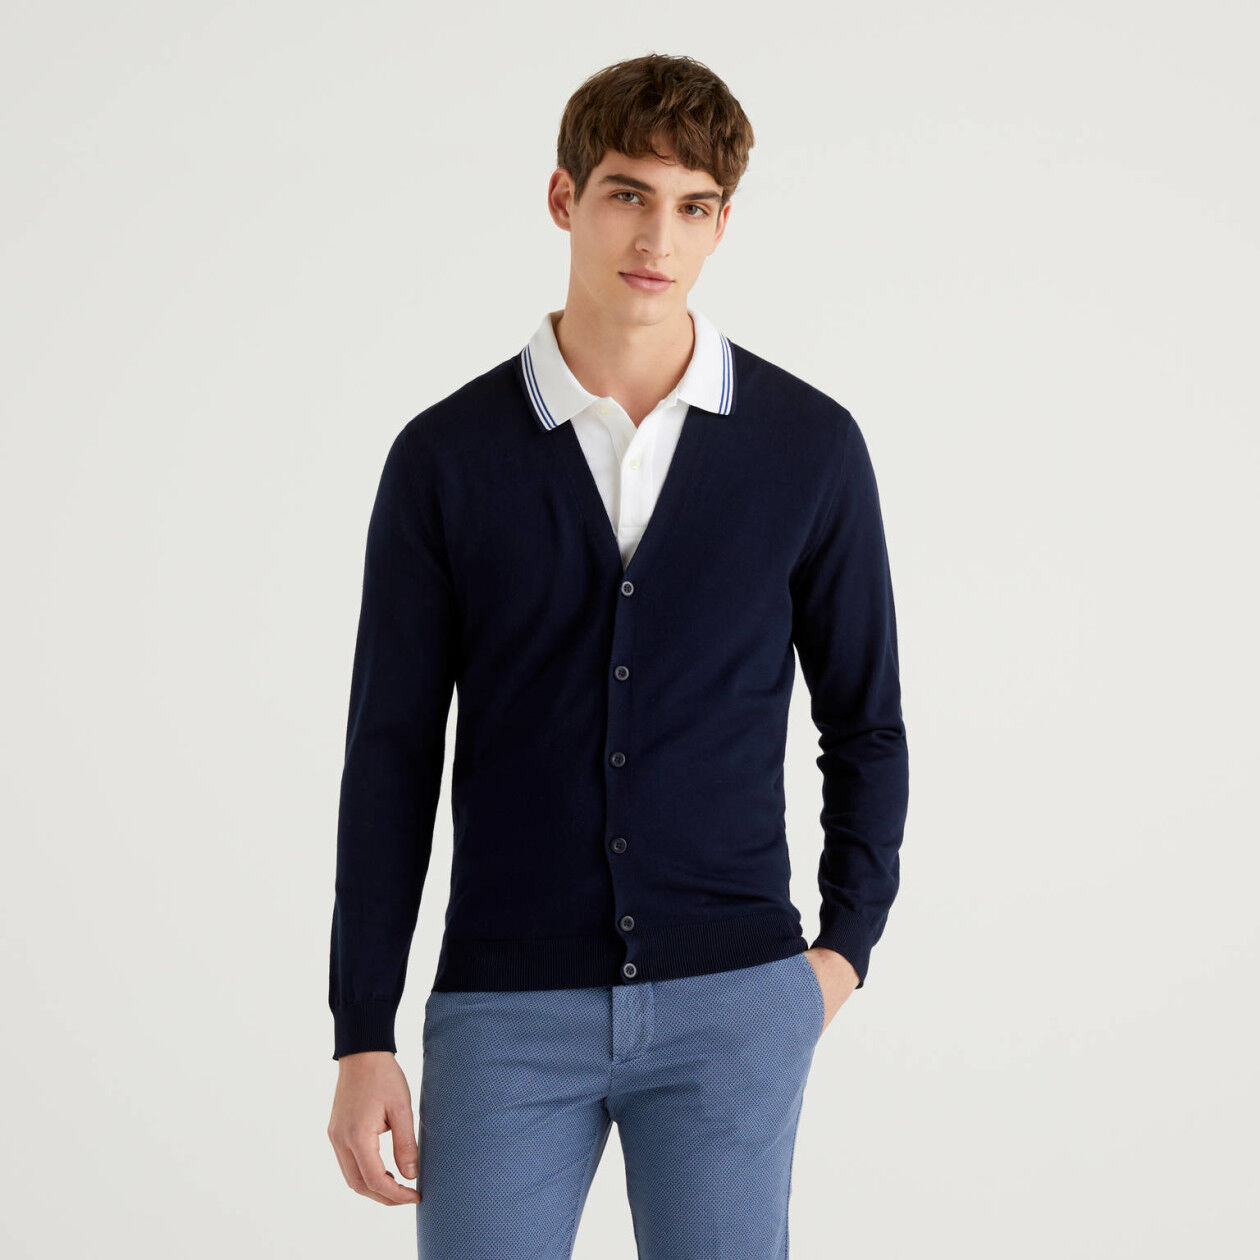 100% cotton V-neck cardigan